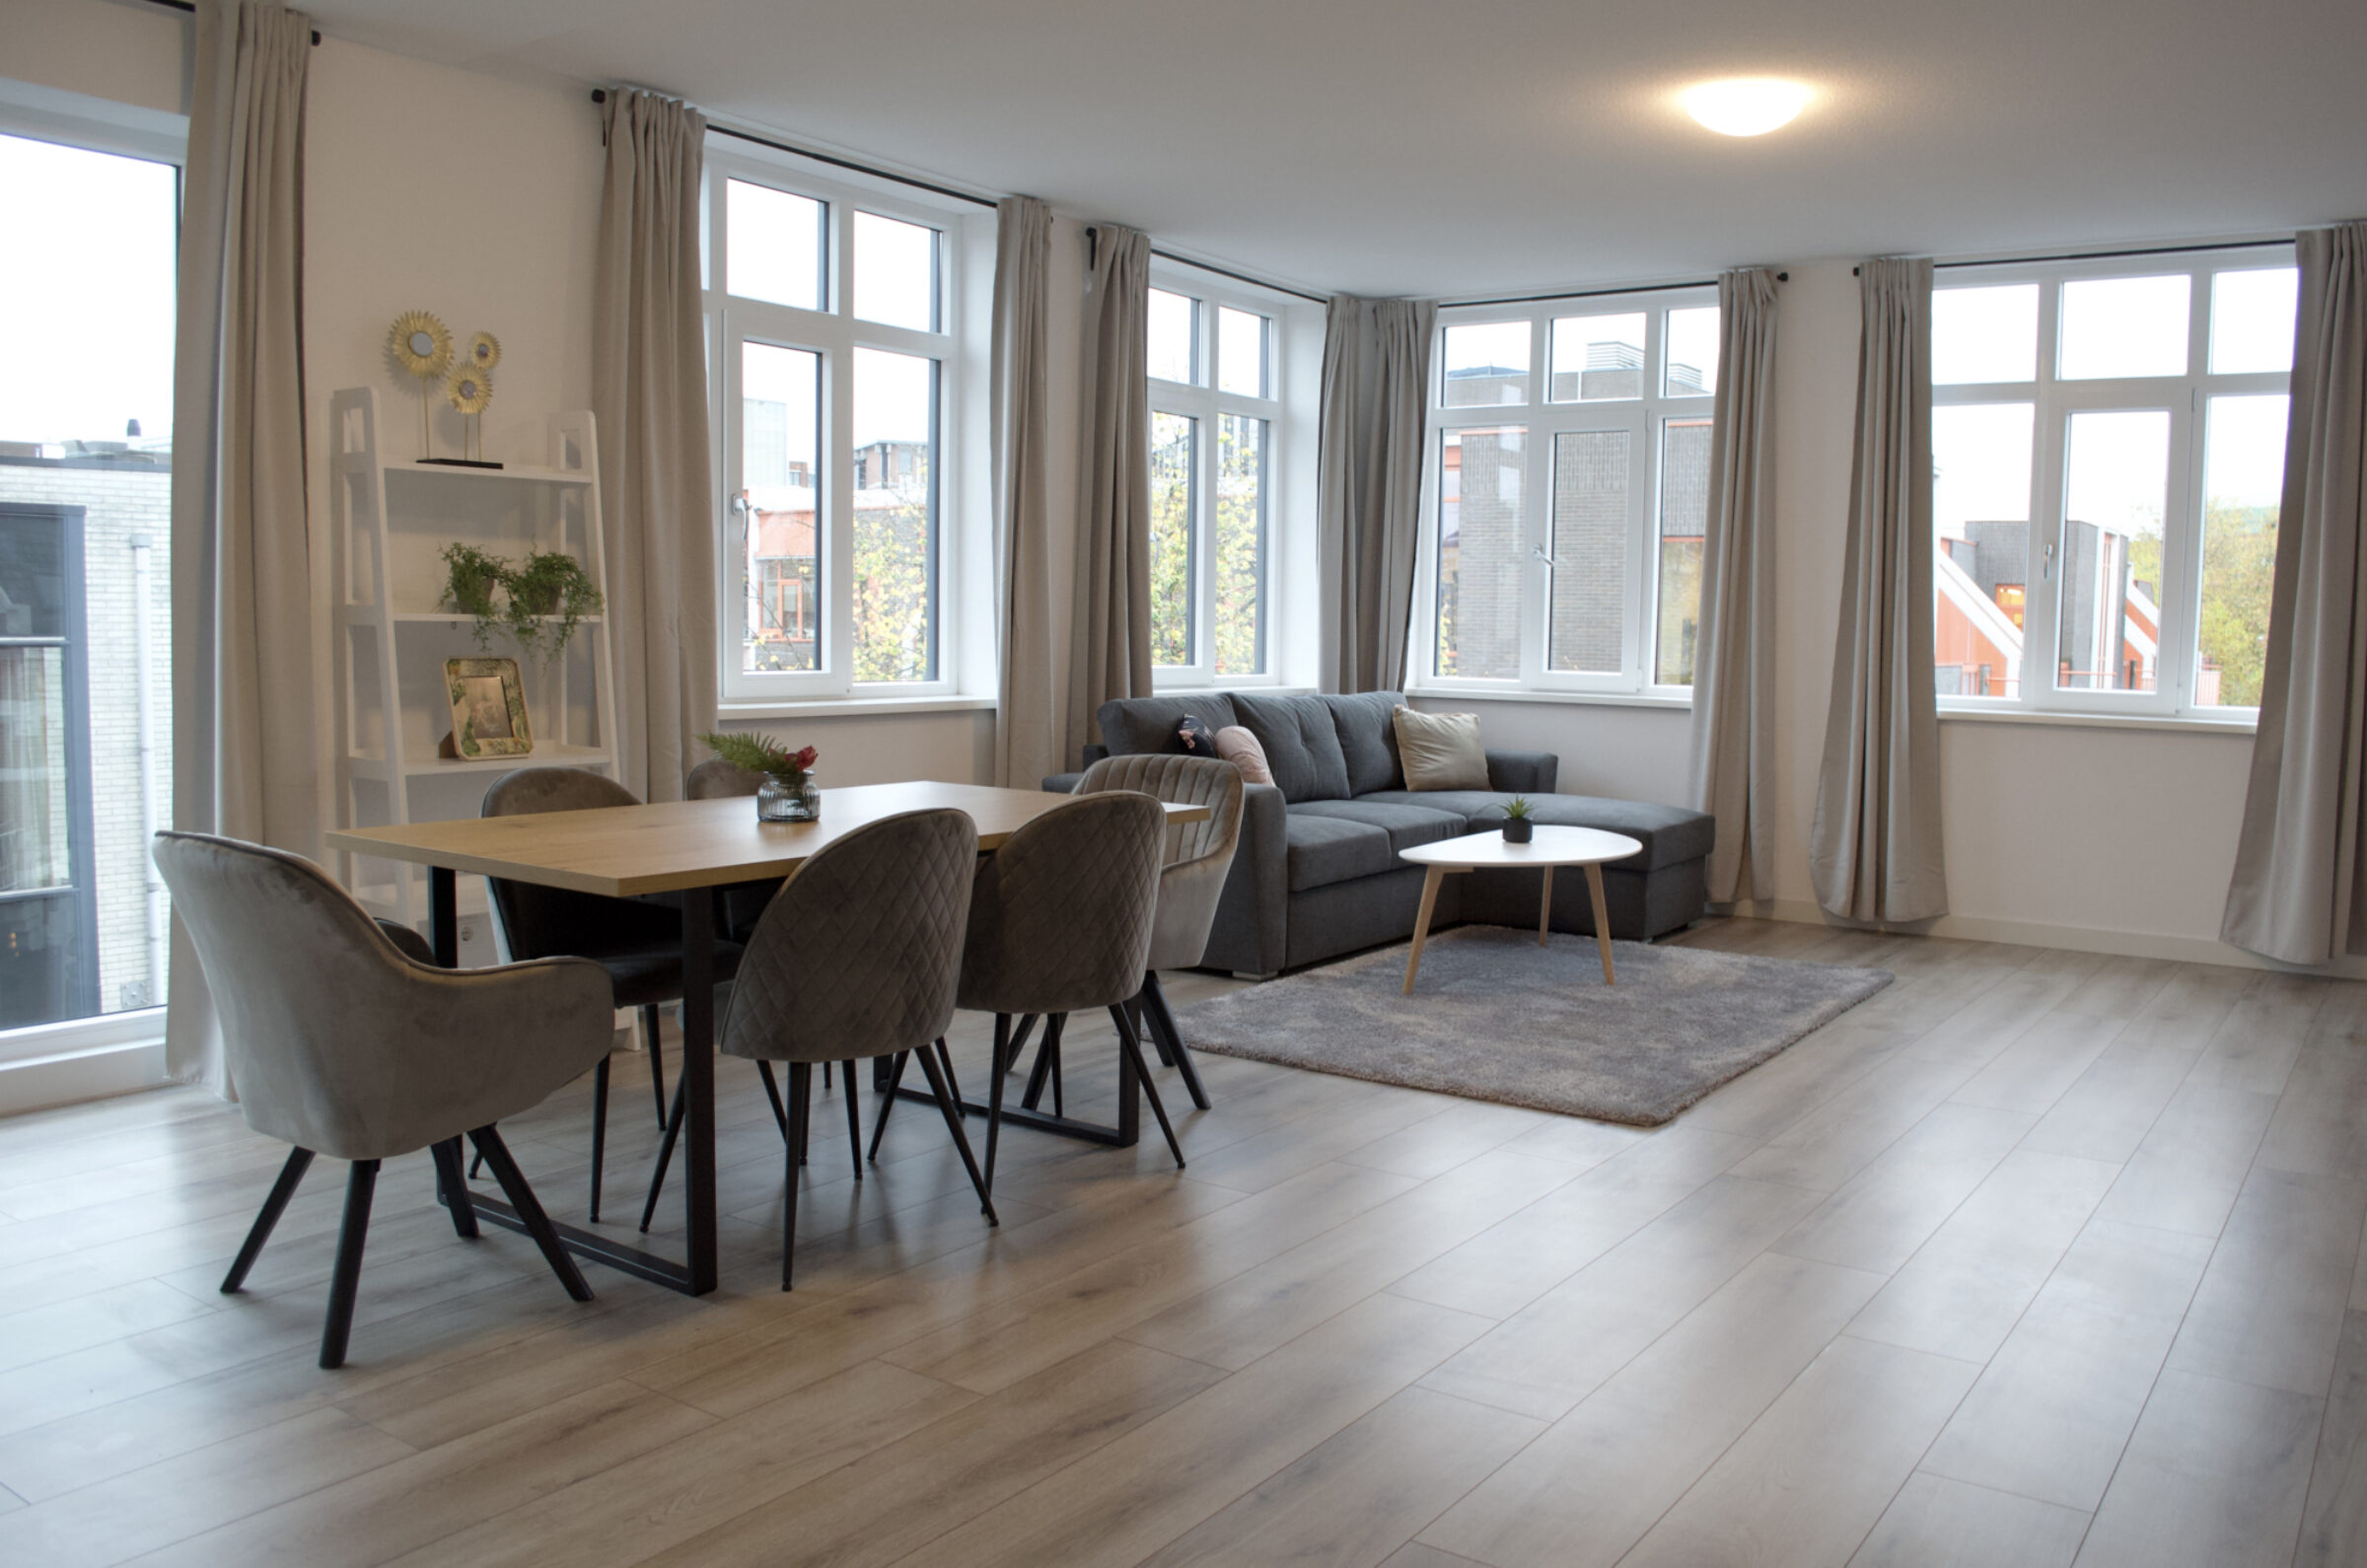 BB the Residence Enschede